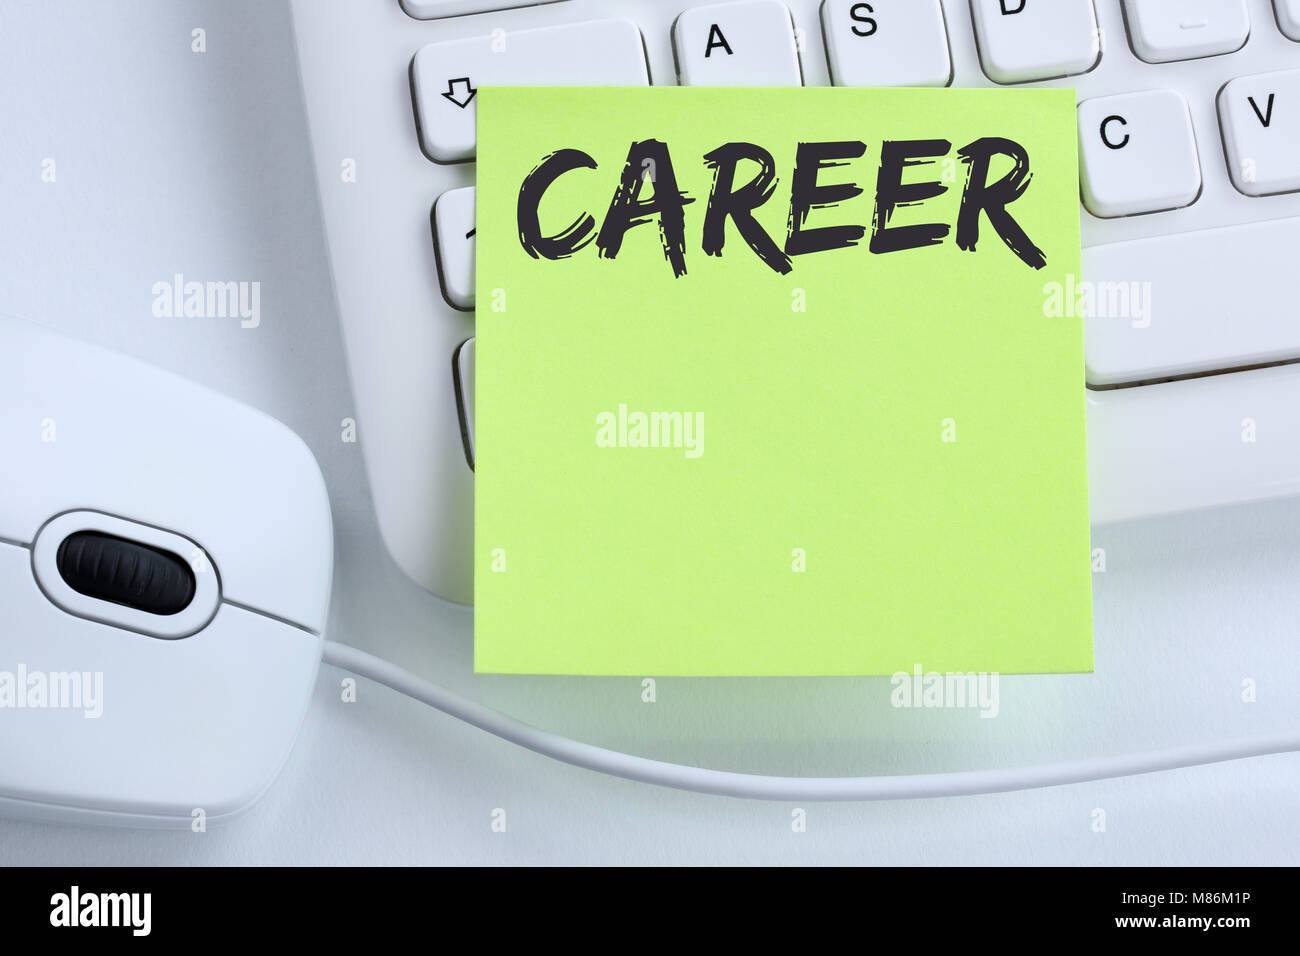 Career opportunities goals success and development business concept mouse computer keyboard - Stock Image